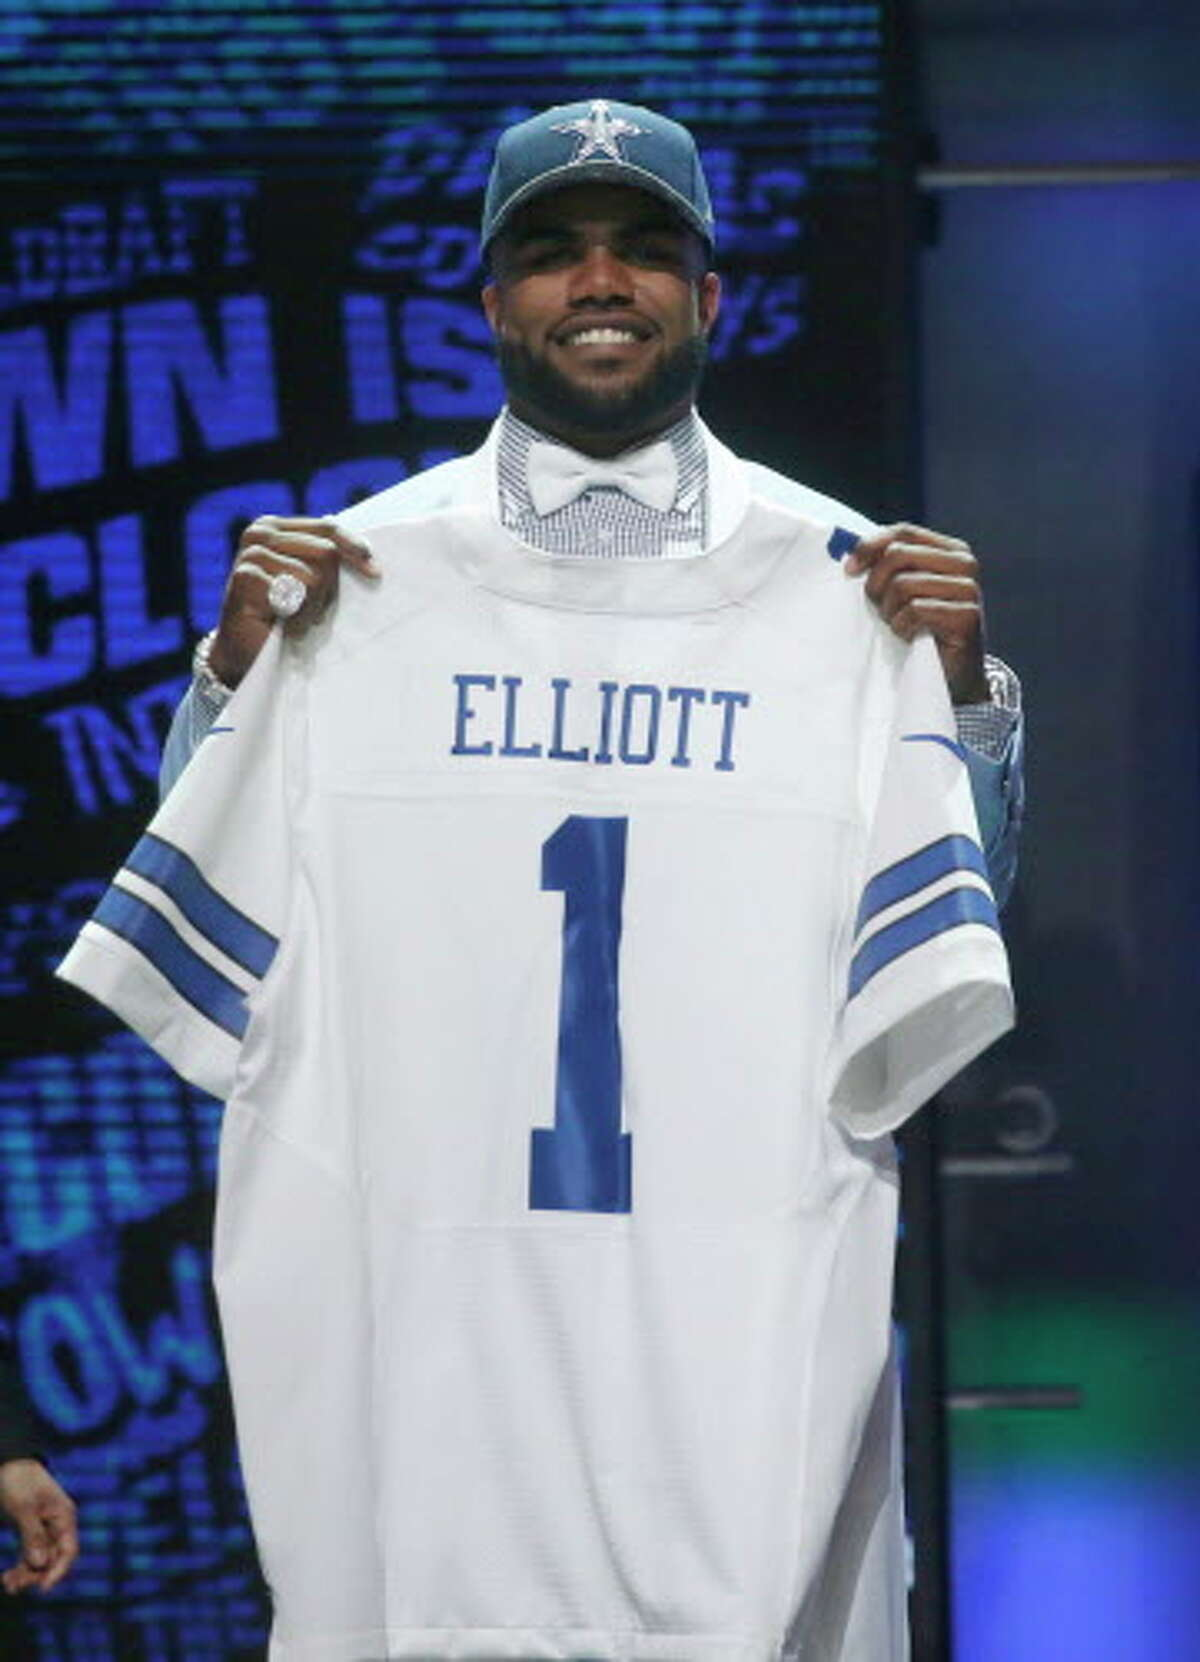 Ohio State?'s Ezekiel Elliott poses for photos after being selected by Dallas Cowboys as the fourth pick in the first round of the 2016 NFL football draft, Thursday, April 28, 2016, in Chicago. (AP Photo/Charles Rex Arbogast)